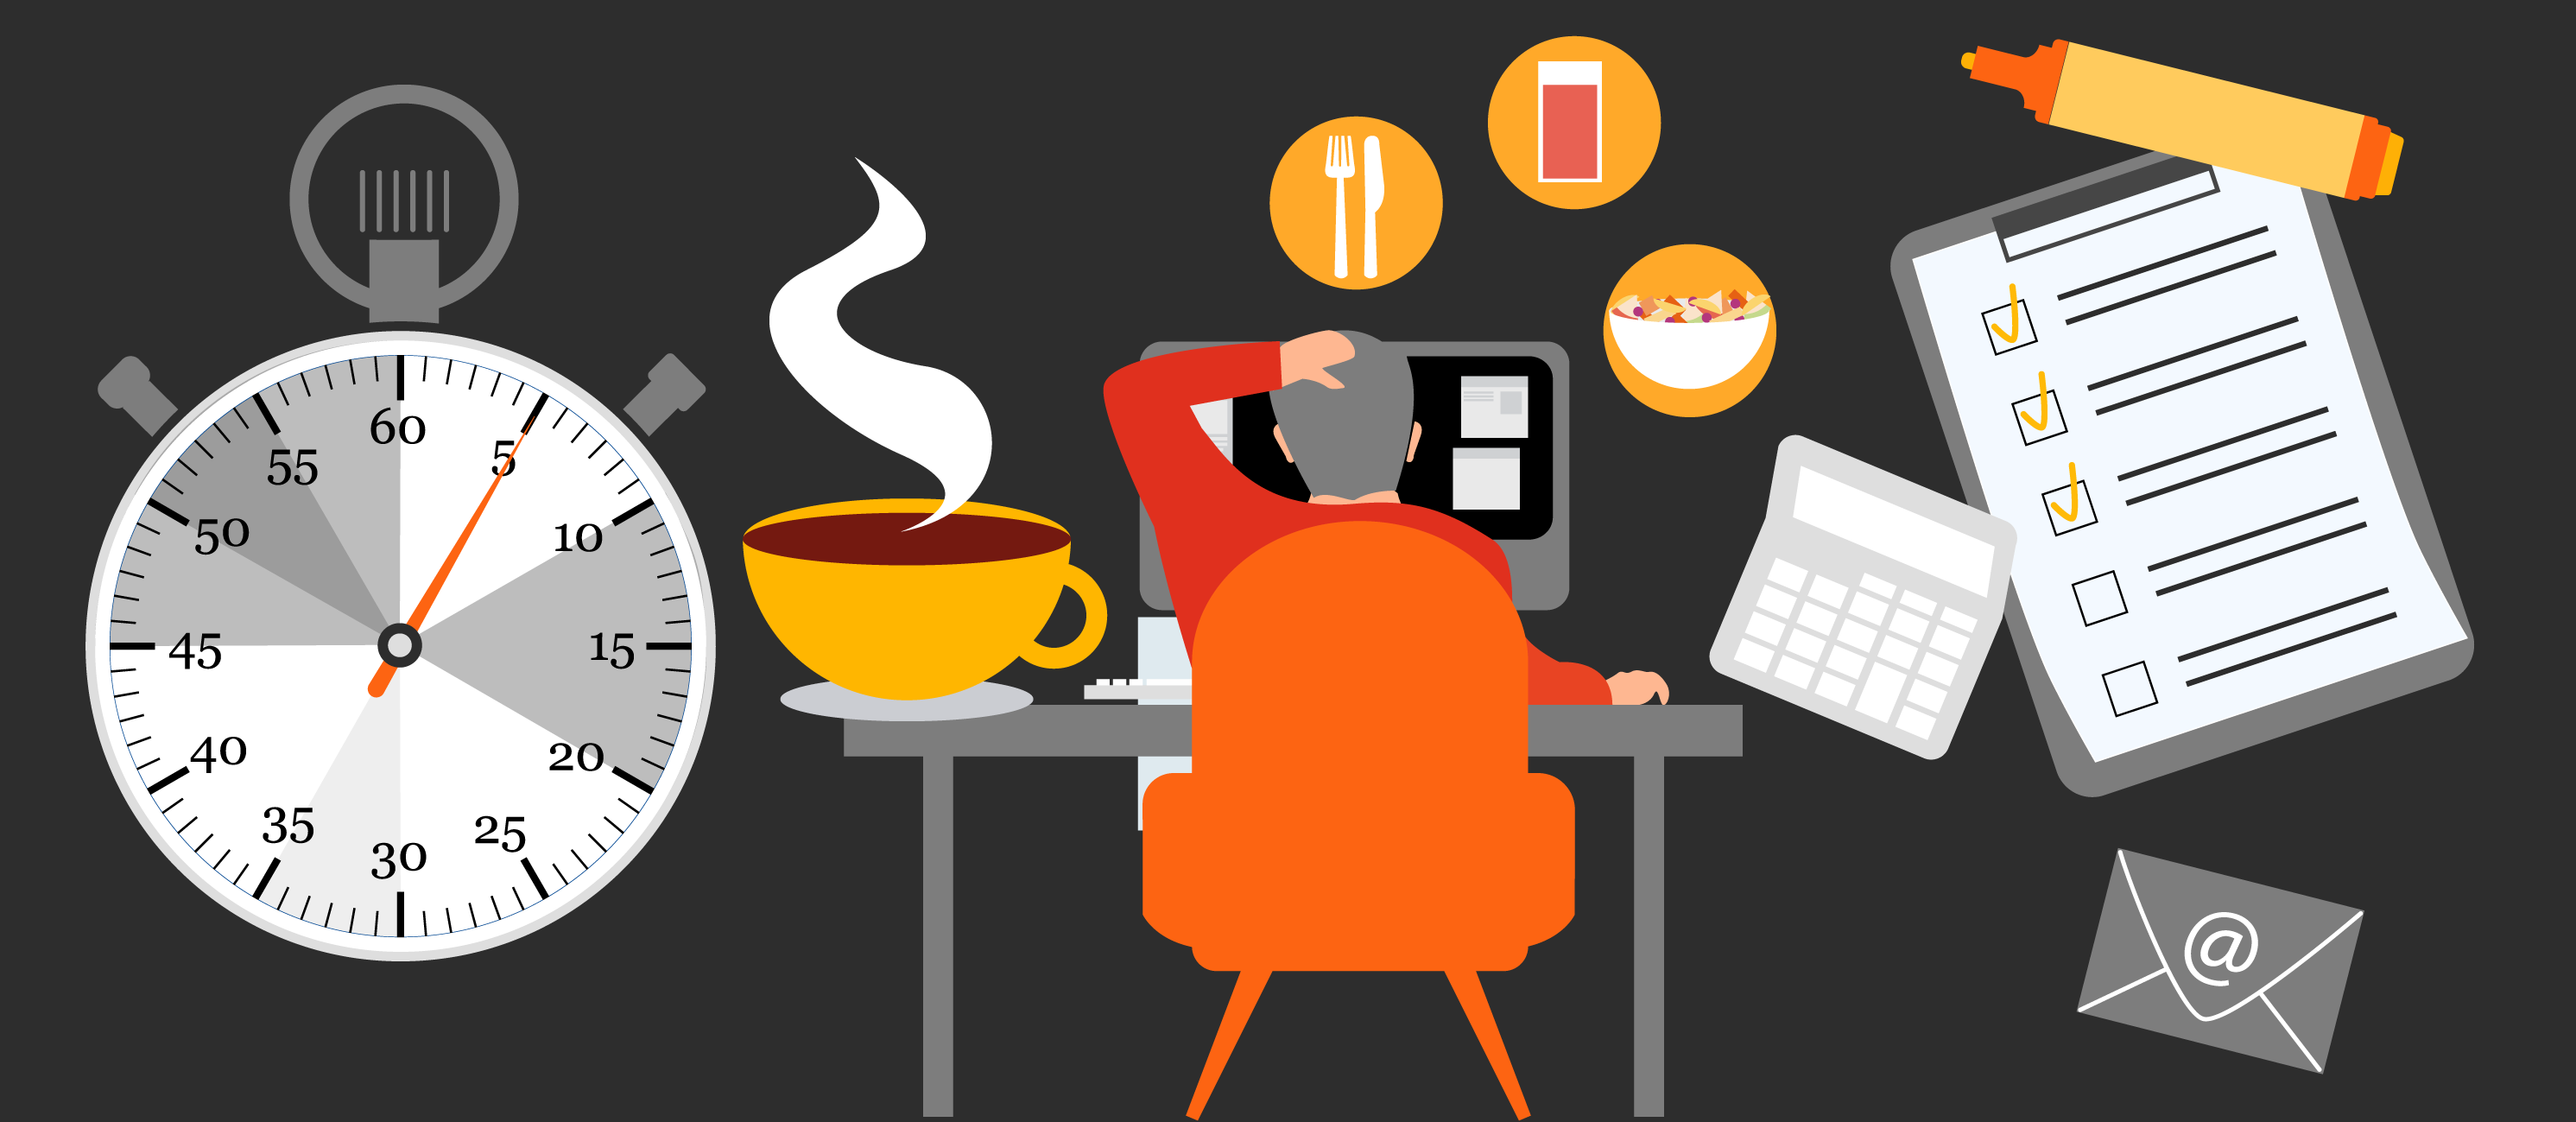 Redesign your morning routine. Don't forget breakfast and your usual caffeine.